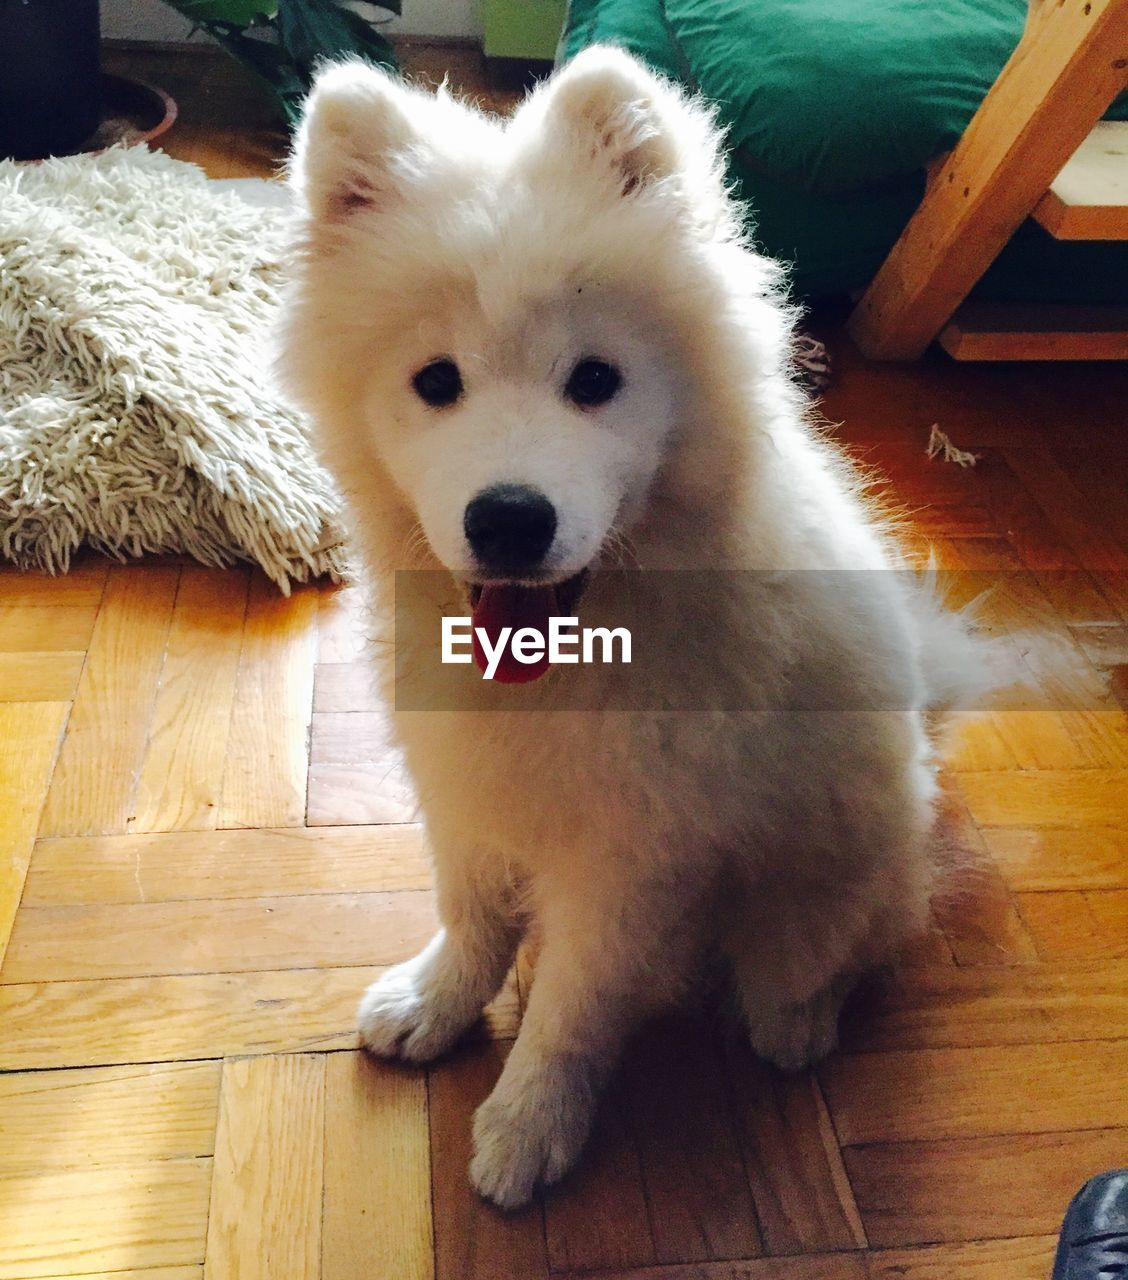 pets, dog, hardwood floor, domestic animals, one animal, mammal, animal themes, indoors, high angle view, looking at camera, portrait, wooden floor, pomeranian, lying down, sitting, cute, full length, puppy, no people, close-up, day